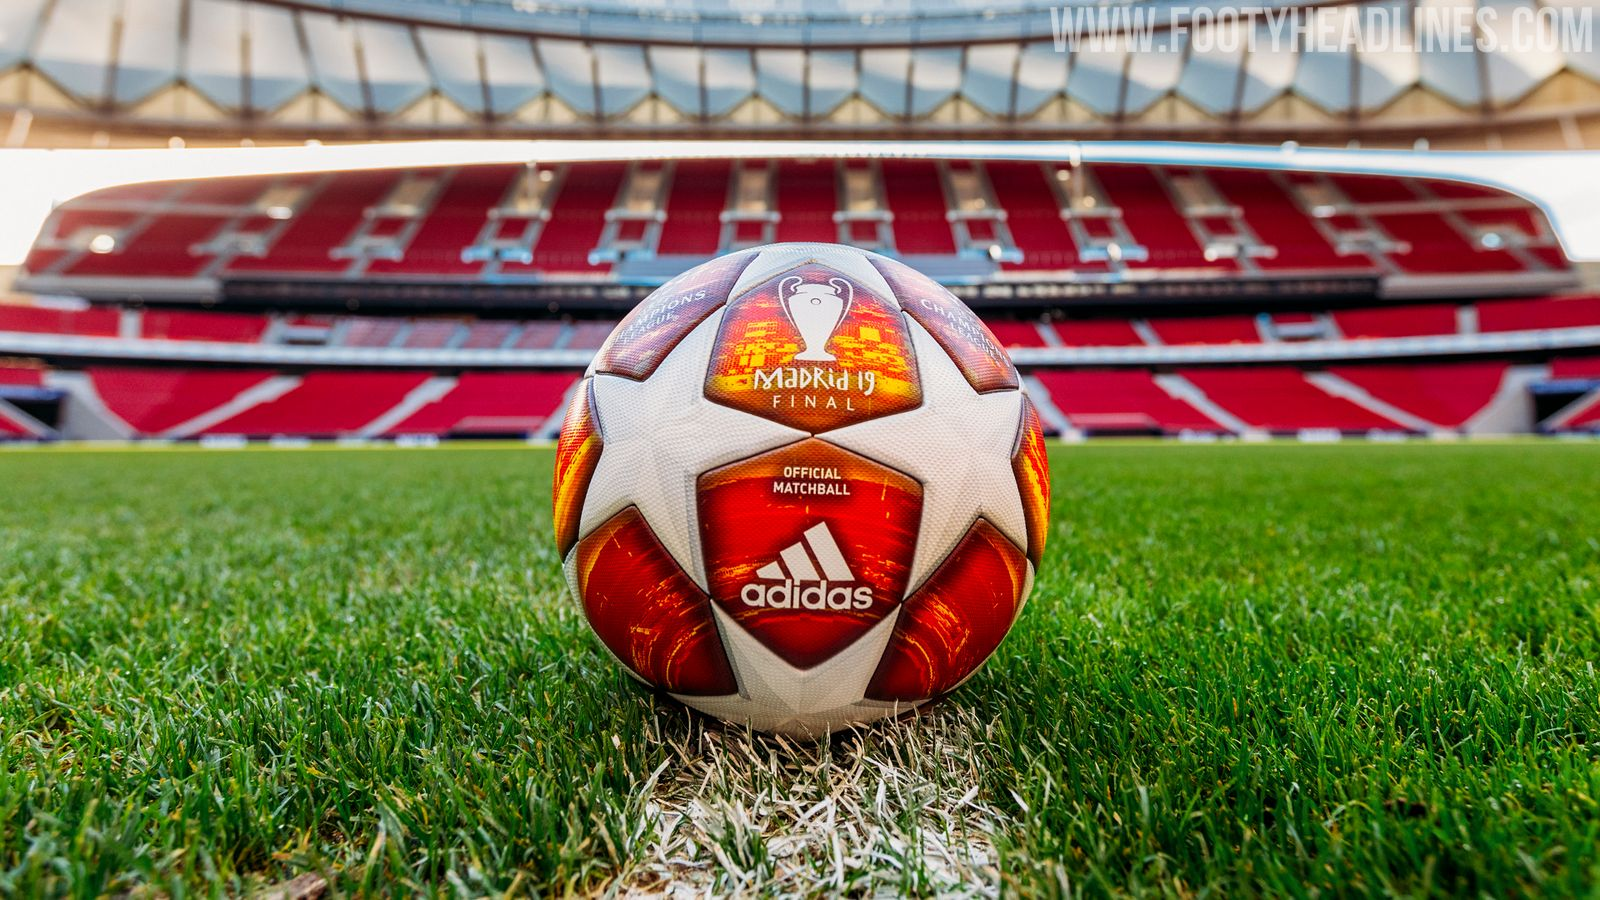 Adidas 2019 Champions League Madrid Final Ball Revealed ...